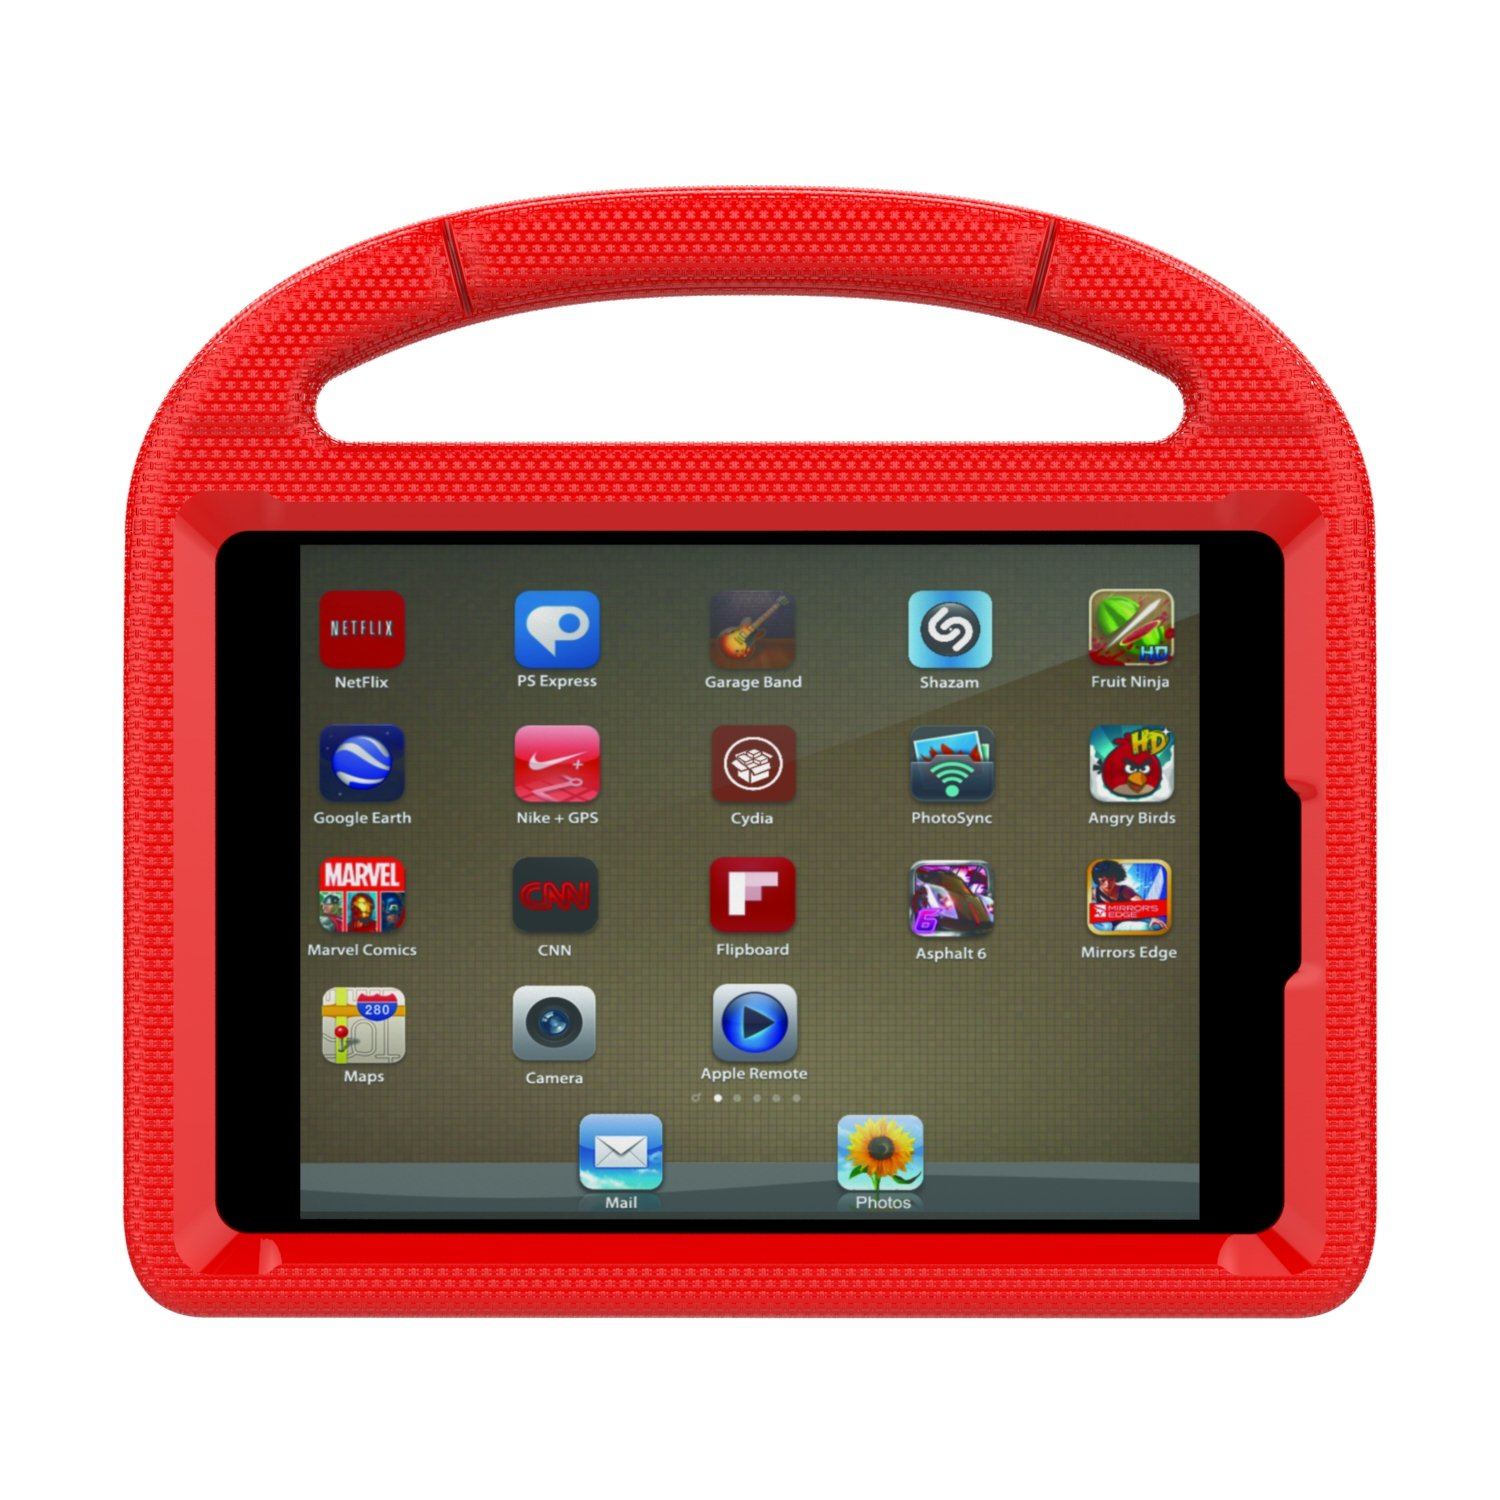 애플 아이패드 6세대 97인치 키즈용 ThreeJ 경량 포터블 스탠드 커버 - 6 컬러 iPad 97 Case, iPad 97 Covers for Kids - ThreeJ Light Weight Portable Shockproof Super Protection Handle Stand Cover